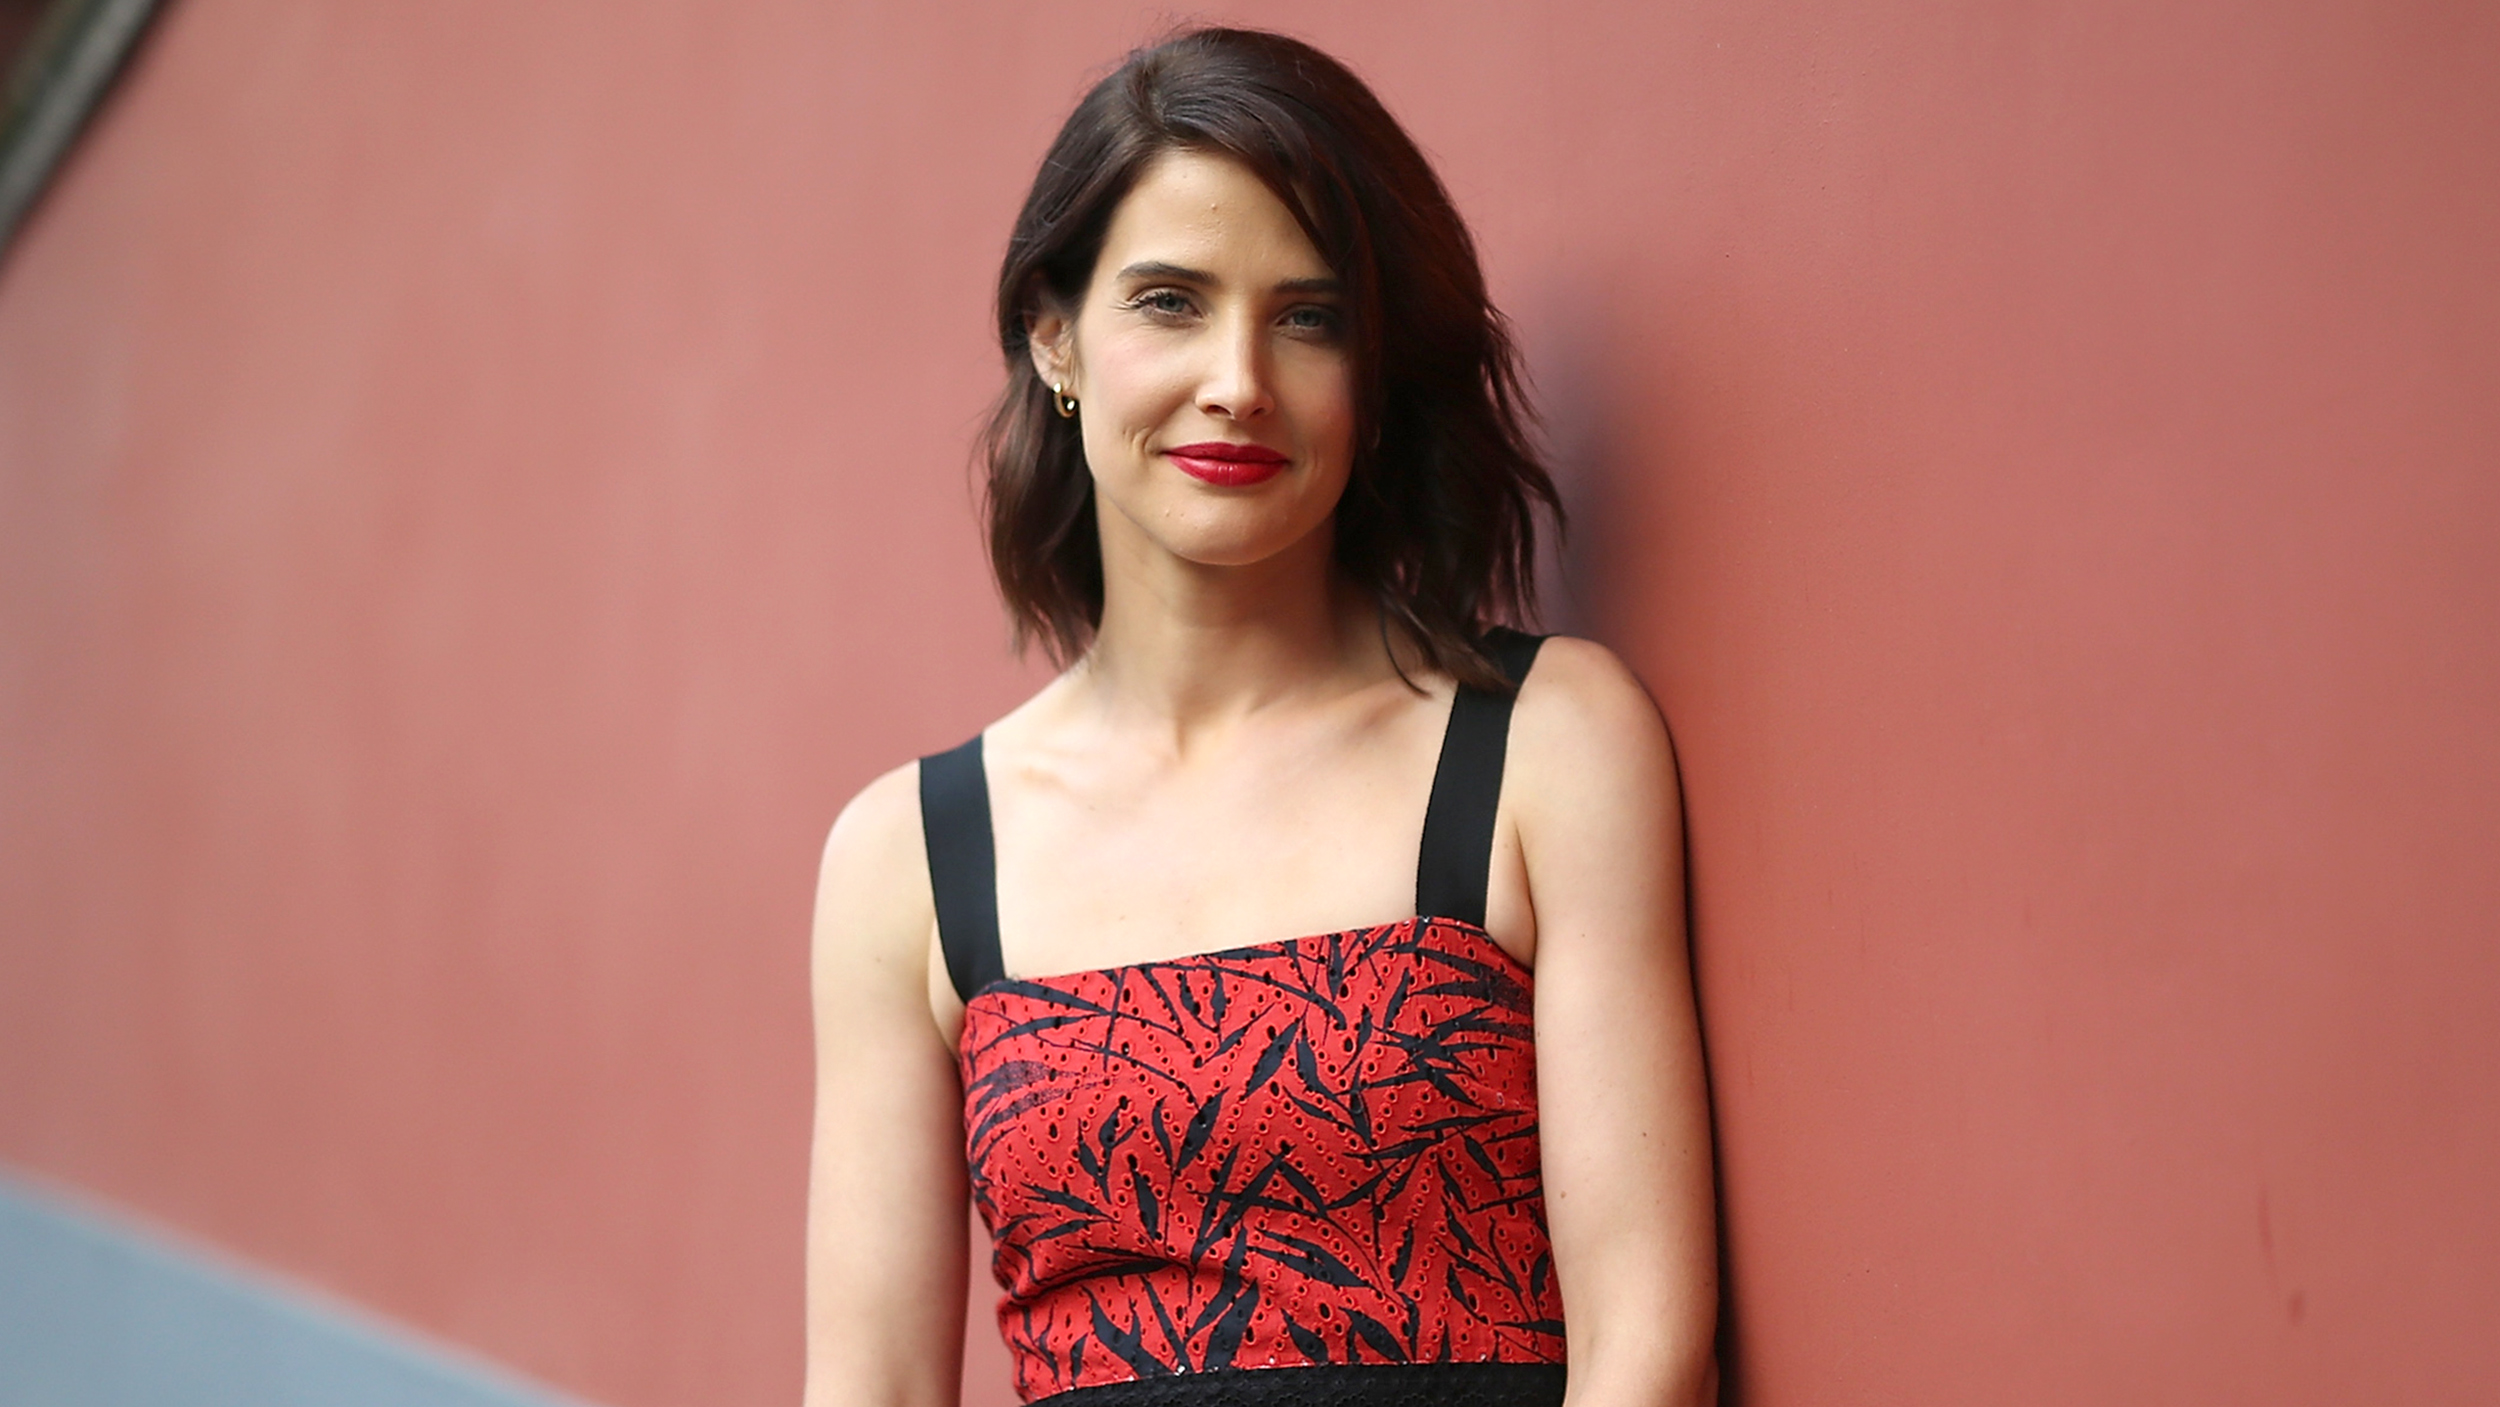 Cobie-Smulders-Wiki-Biography-Age-Height-Weight-Profile-Body-Measurement.